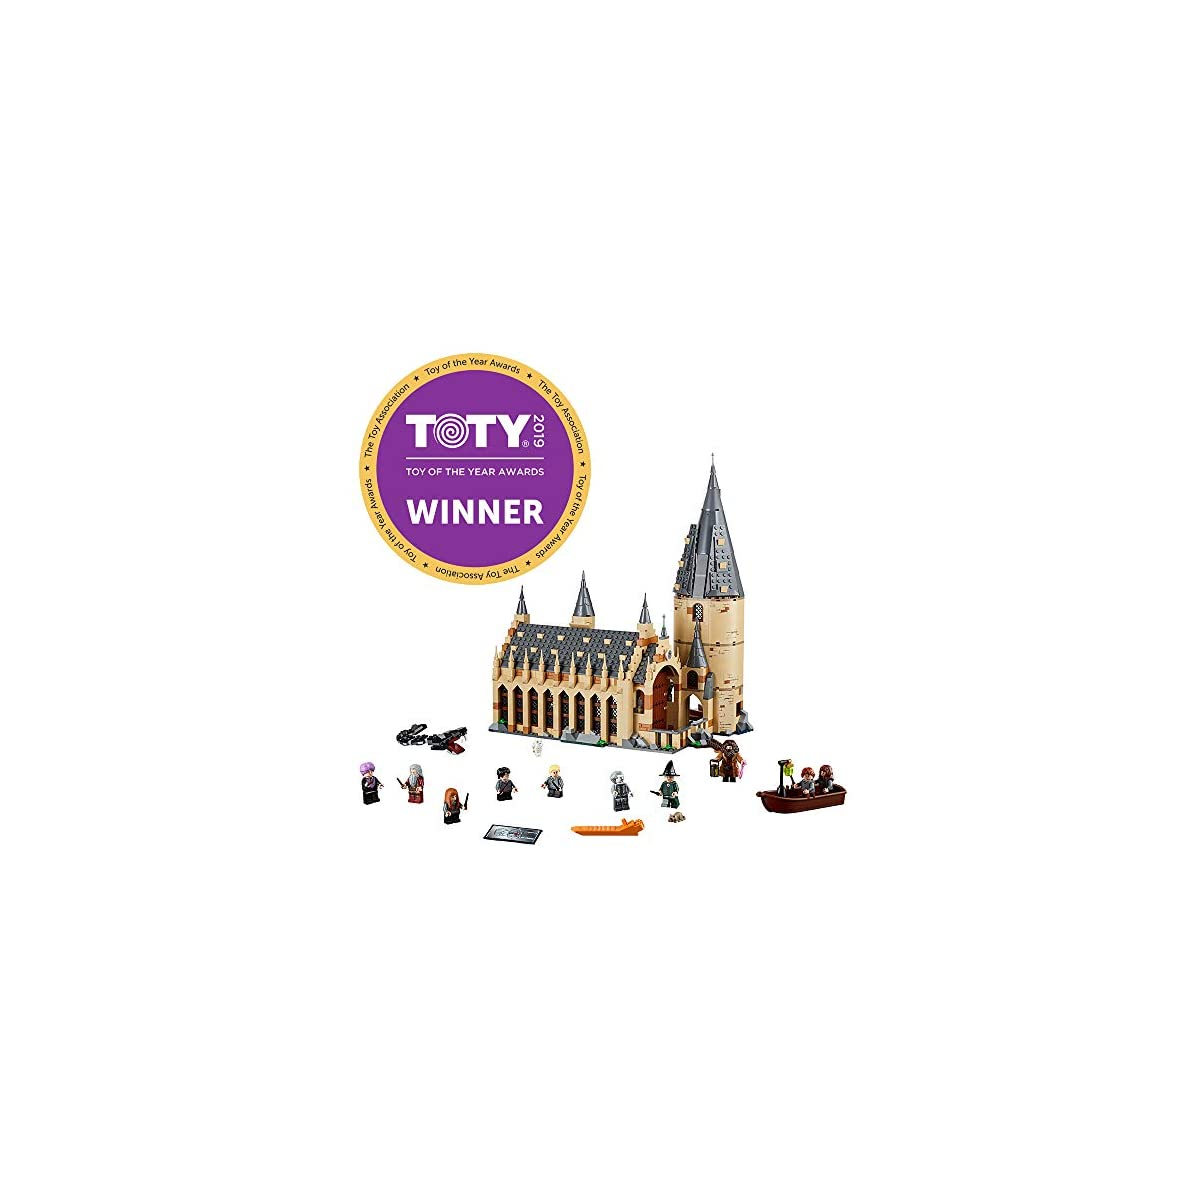 SaleProductsOffer - No.1 Best Online Store 51qIDZet3XL LEGO Harry Potter Hogwarts Great Hall 75954 Building Kit and Magic Castle Toy, Fantasy Creatures, Hermione Granger, Draco Malfoy and Hagrid (878 Piece)